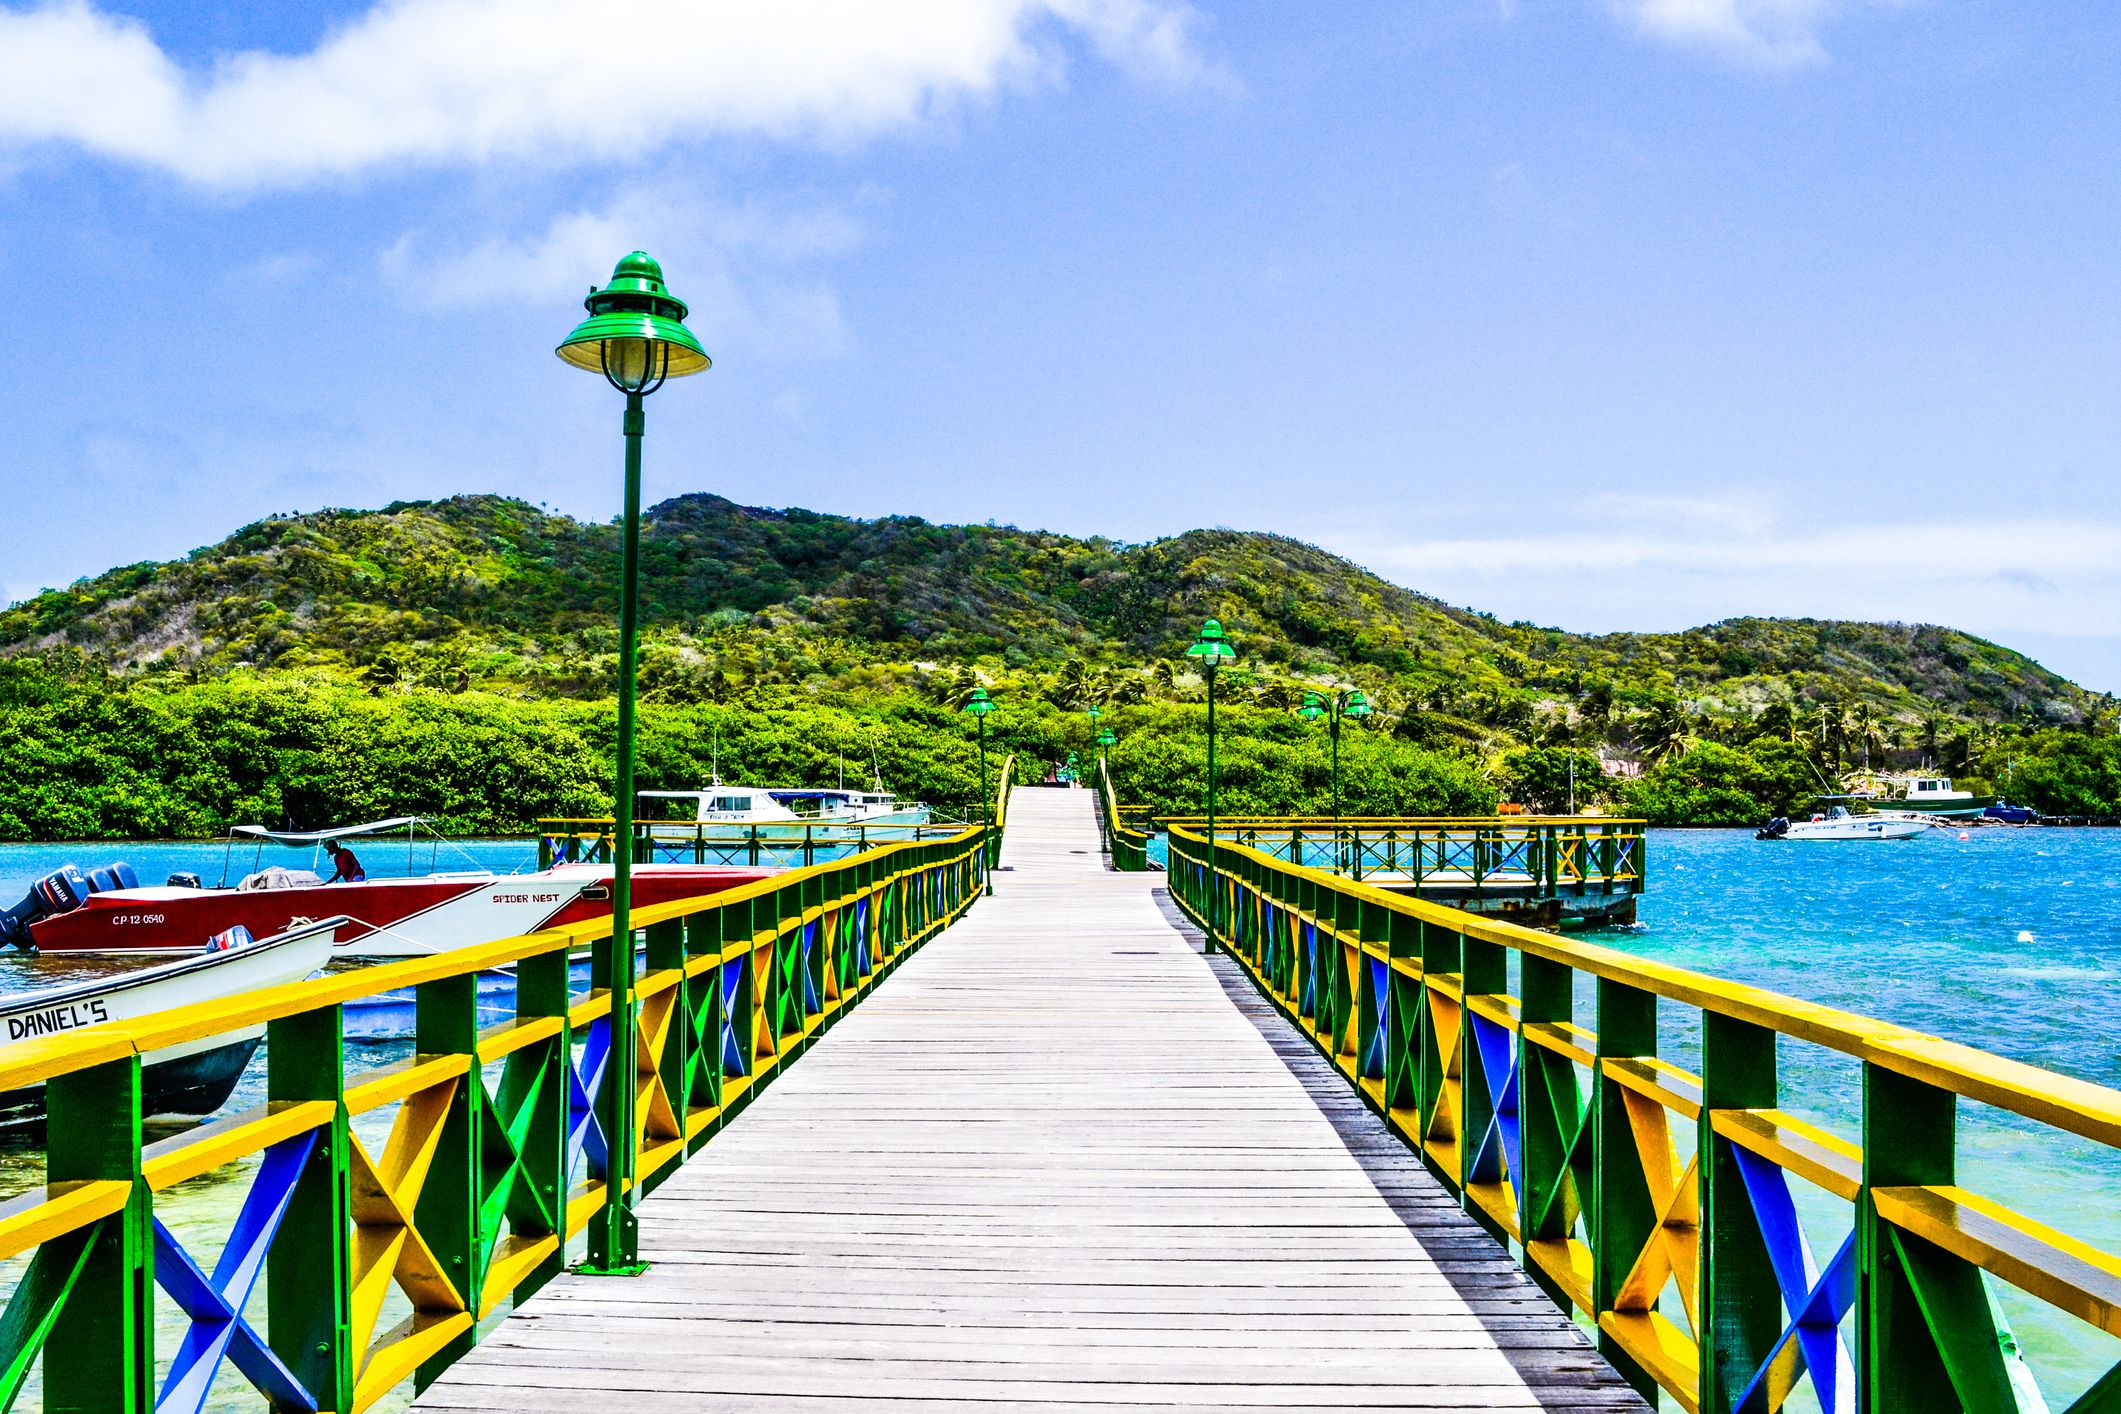 Scenic View Of Jetty Next To Hill Against Cloudy Sky